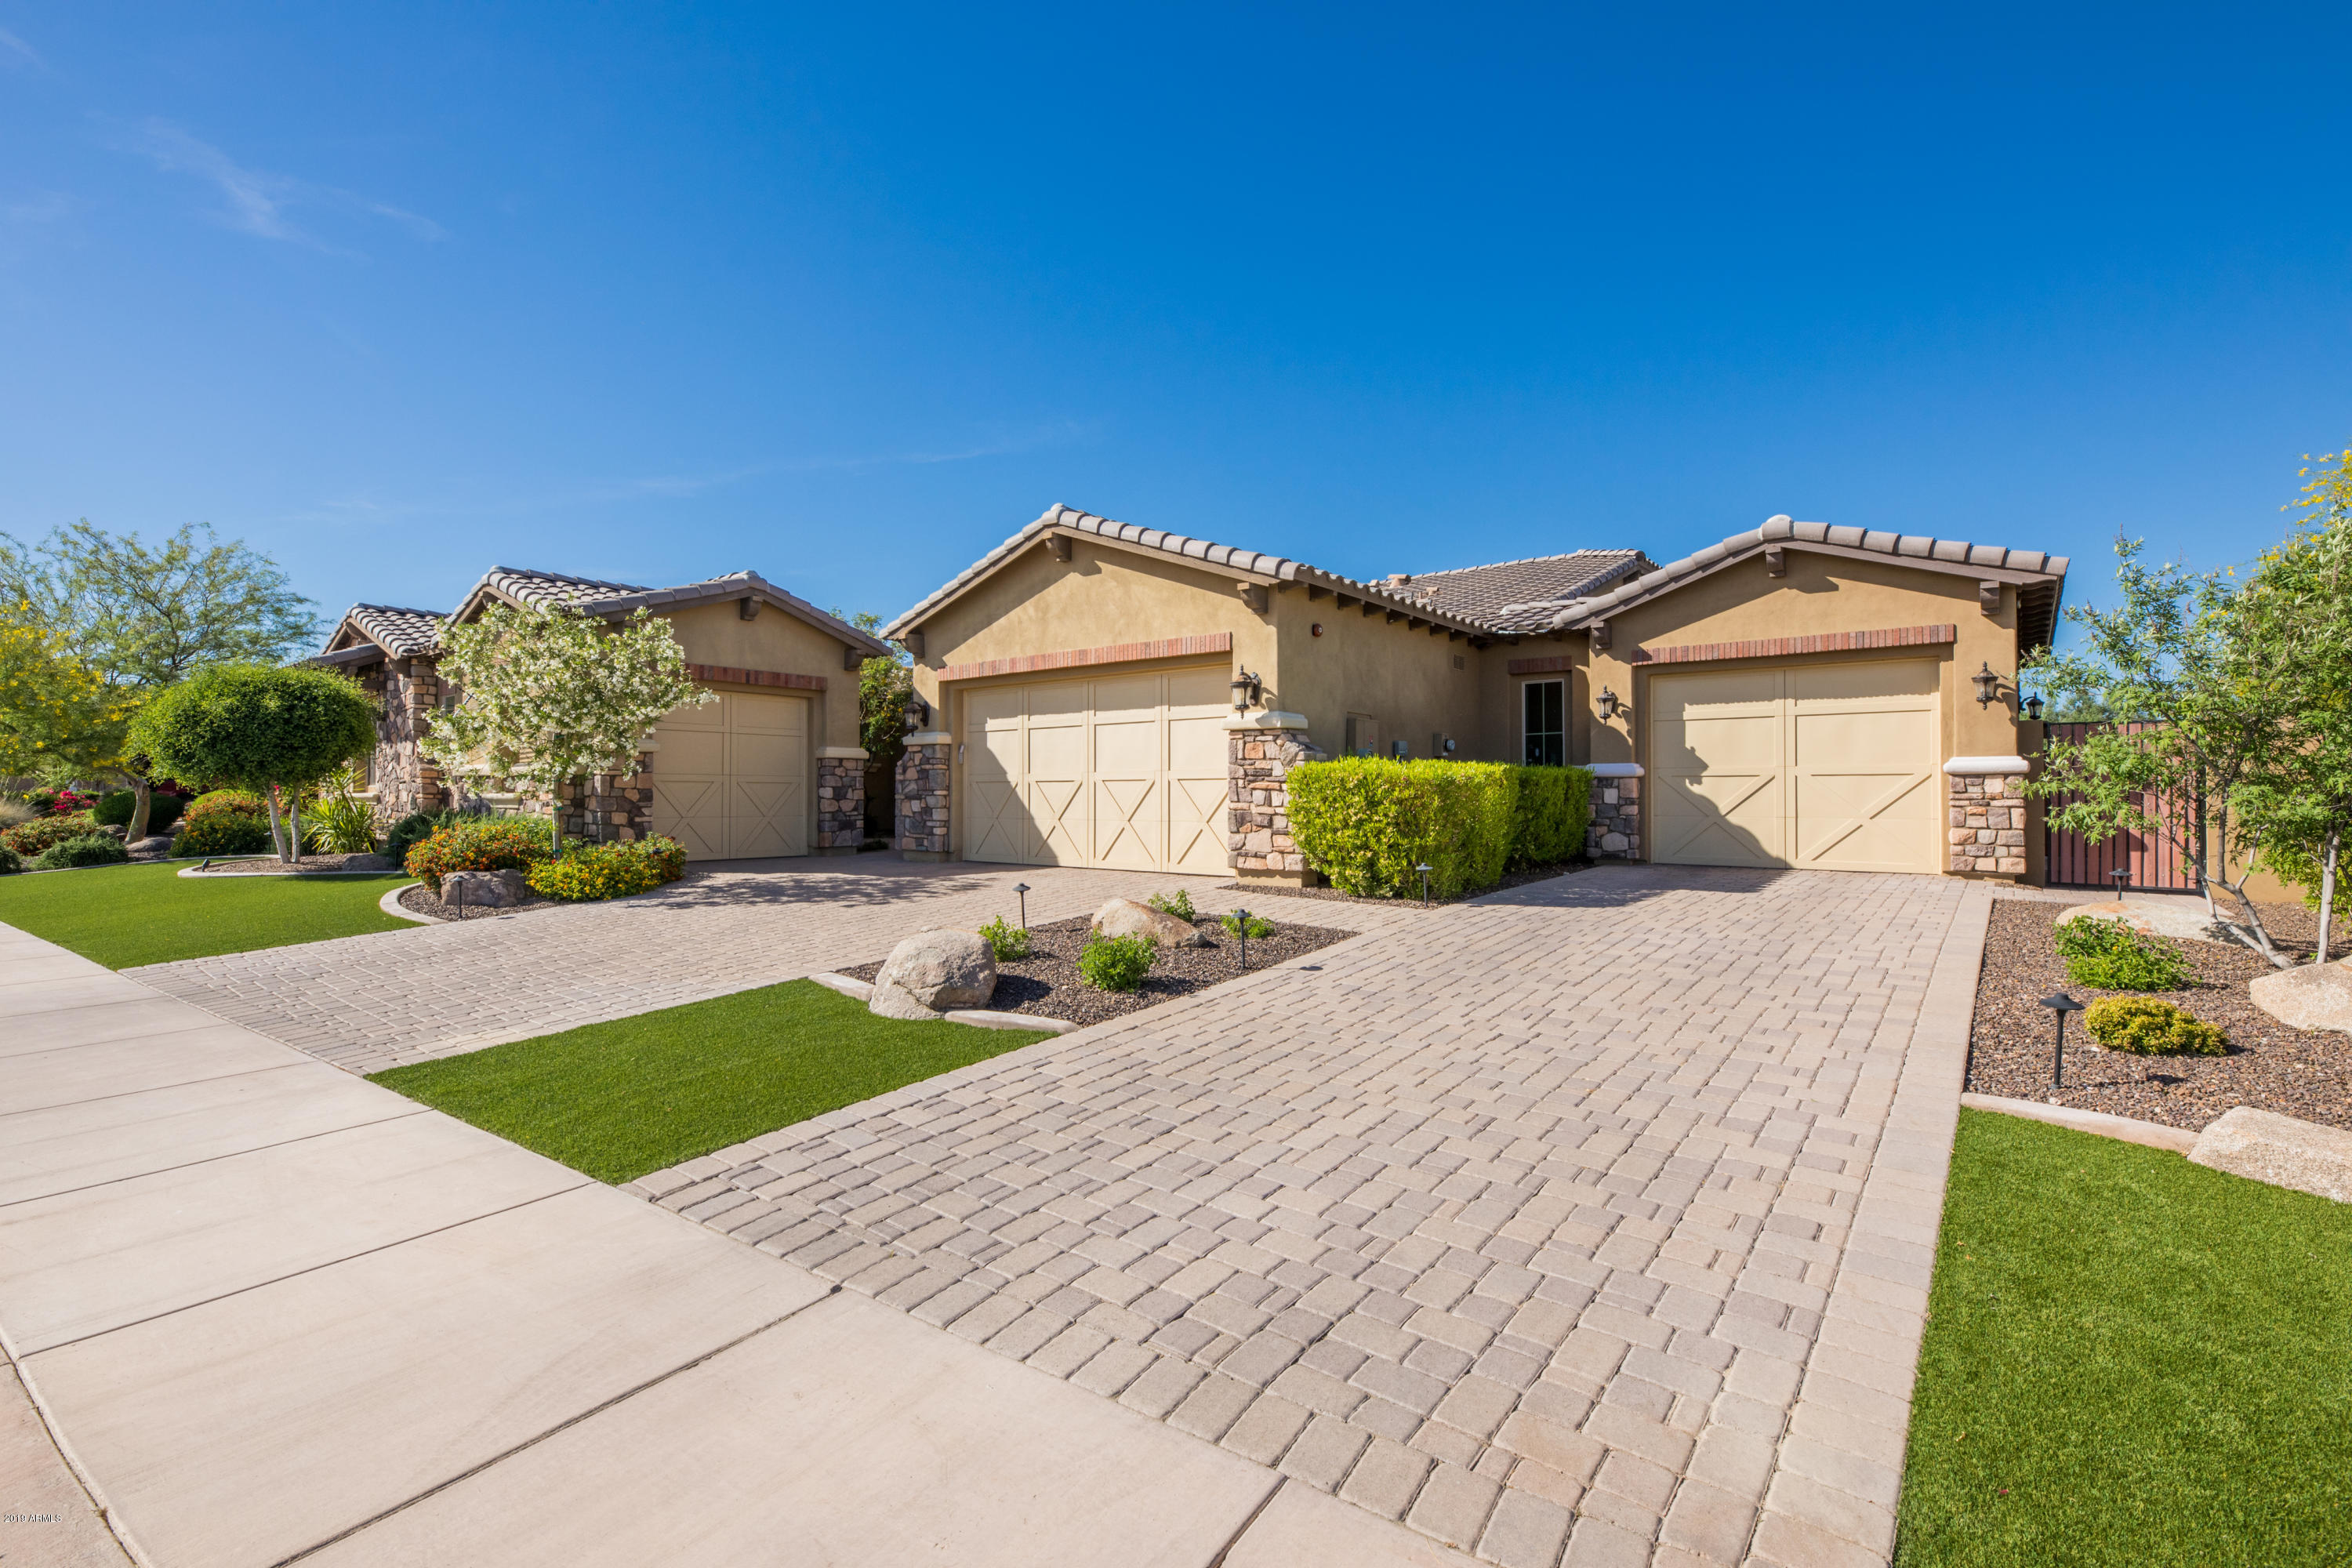 Photo of 12854 W TYLER Trail, Peoria, AZ 85383